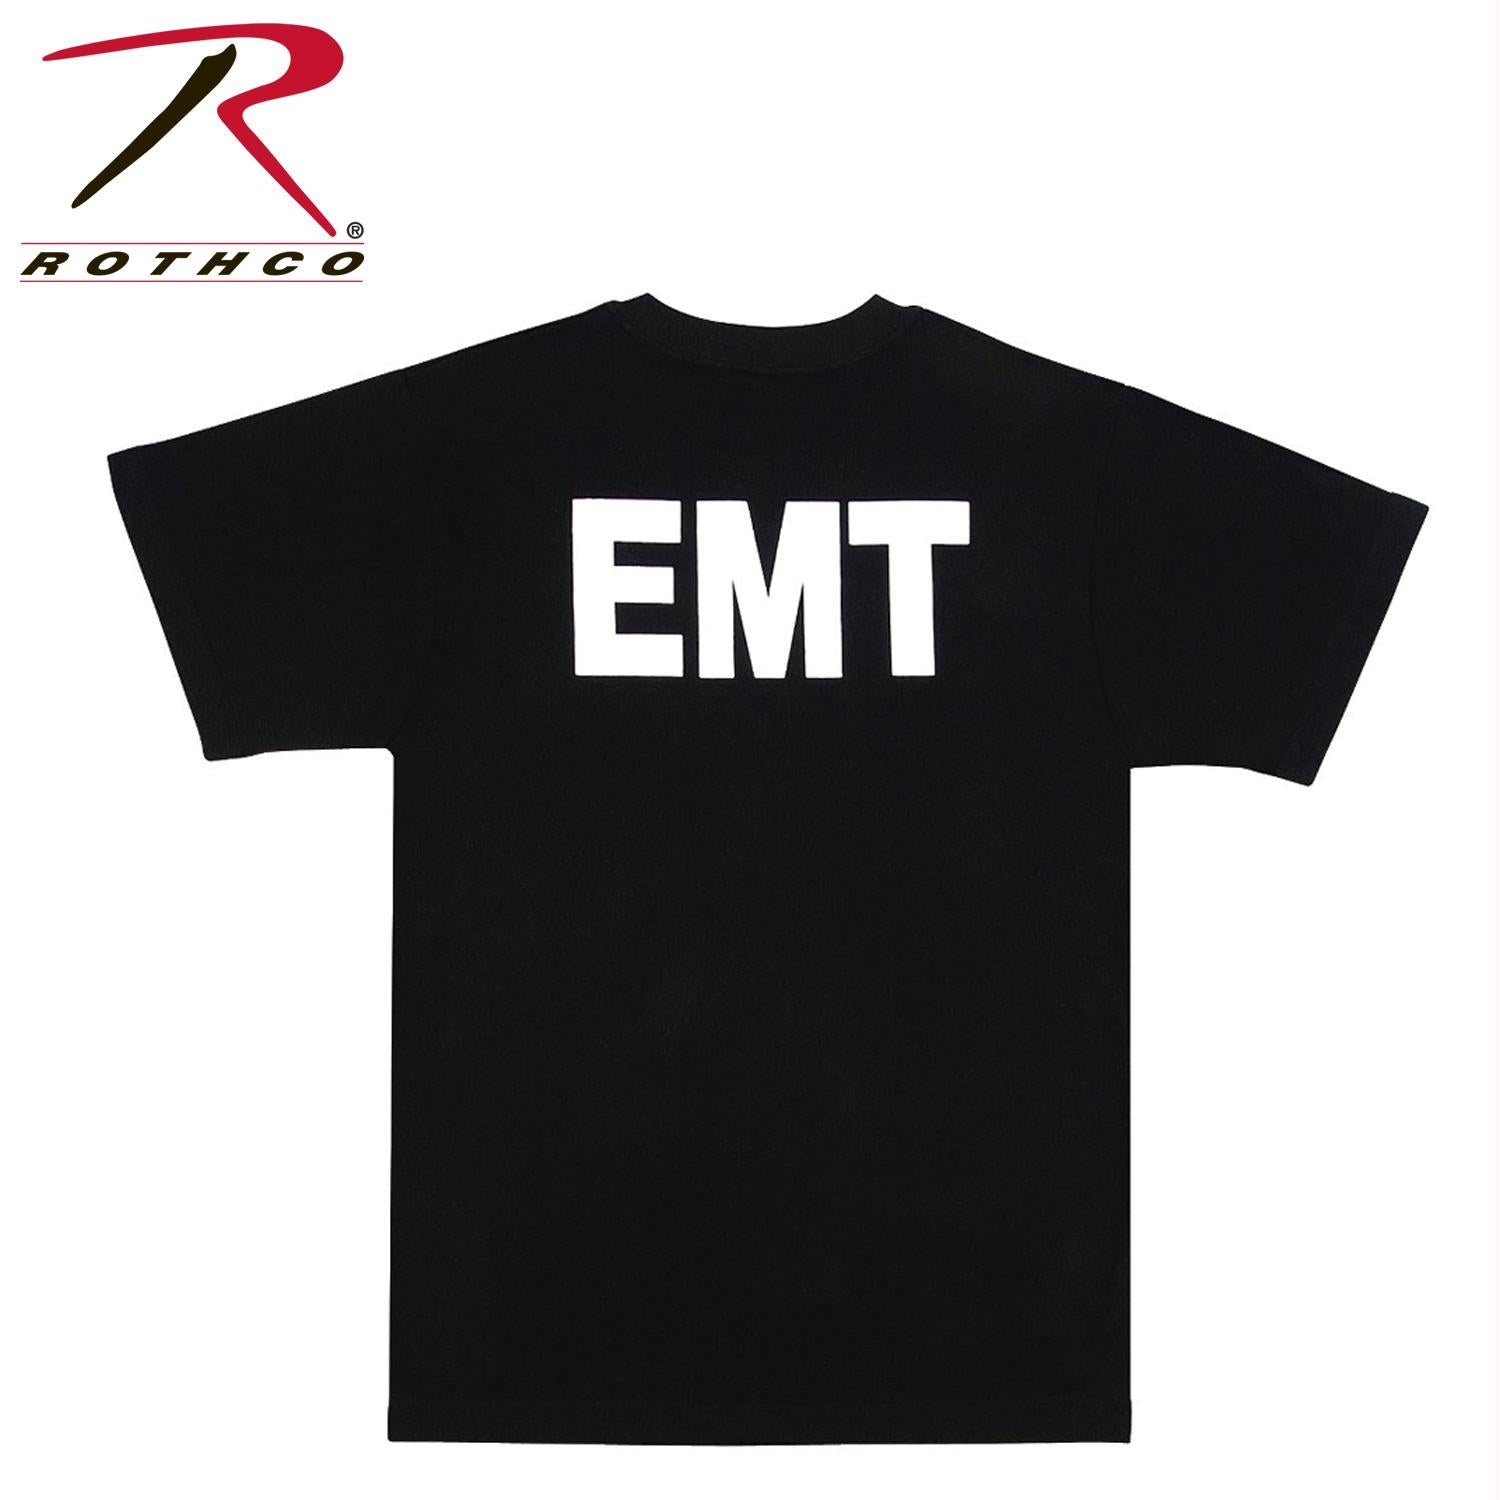 Rothco 2-Sided EMT T-Shirt - Black / 2XL